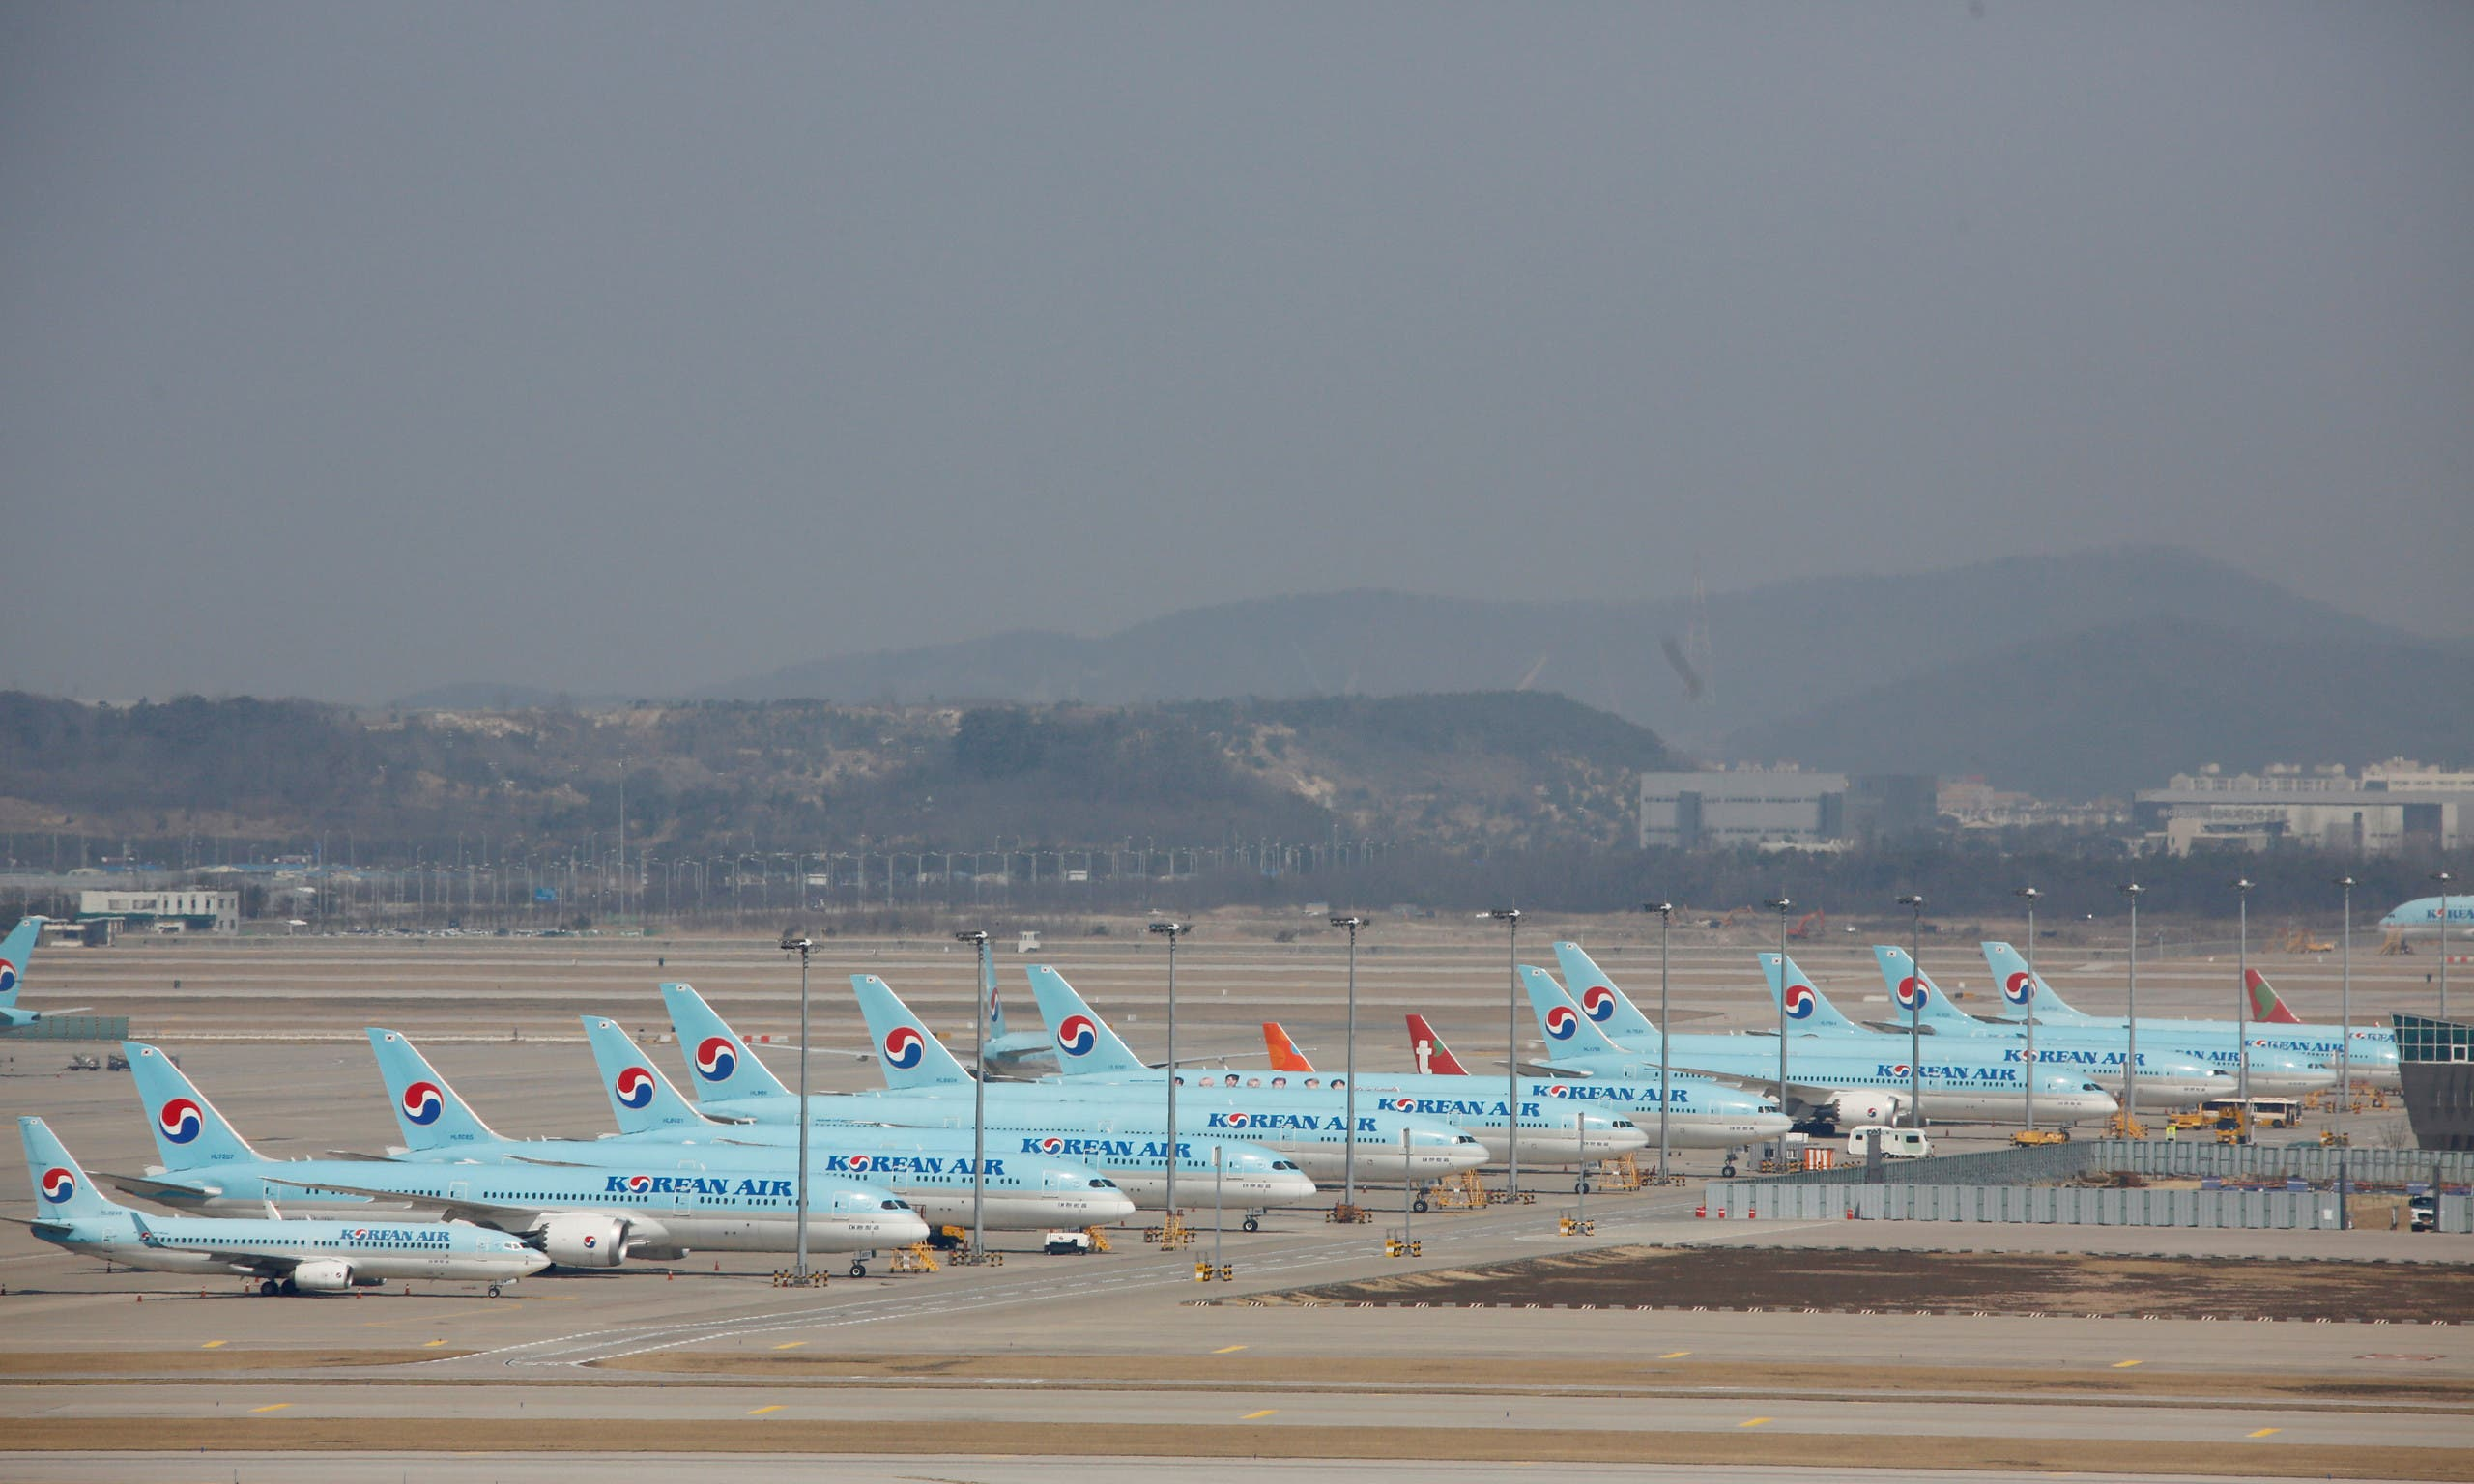 Korean Air's planes sit on tarmac at Incheon International Airport, Incheon, South Korea. (File photo: Reuters)